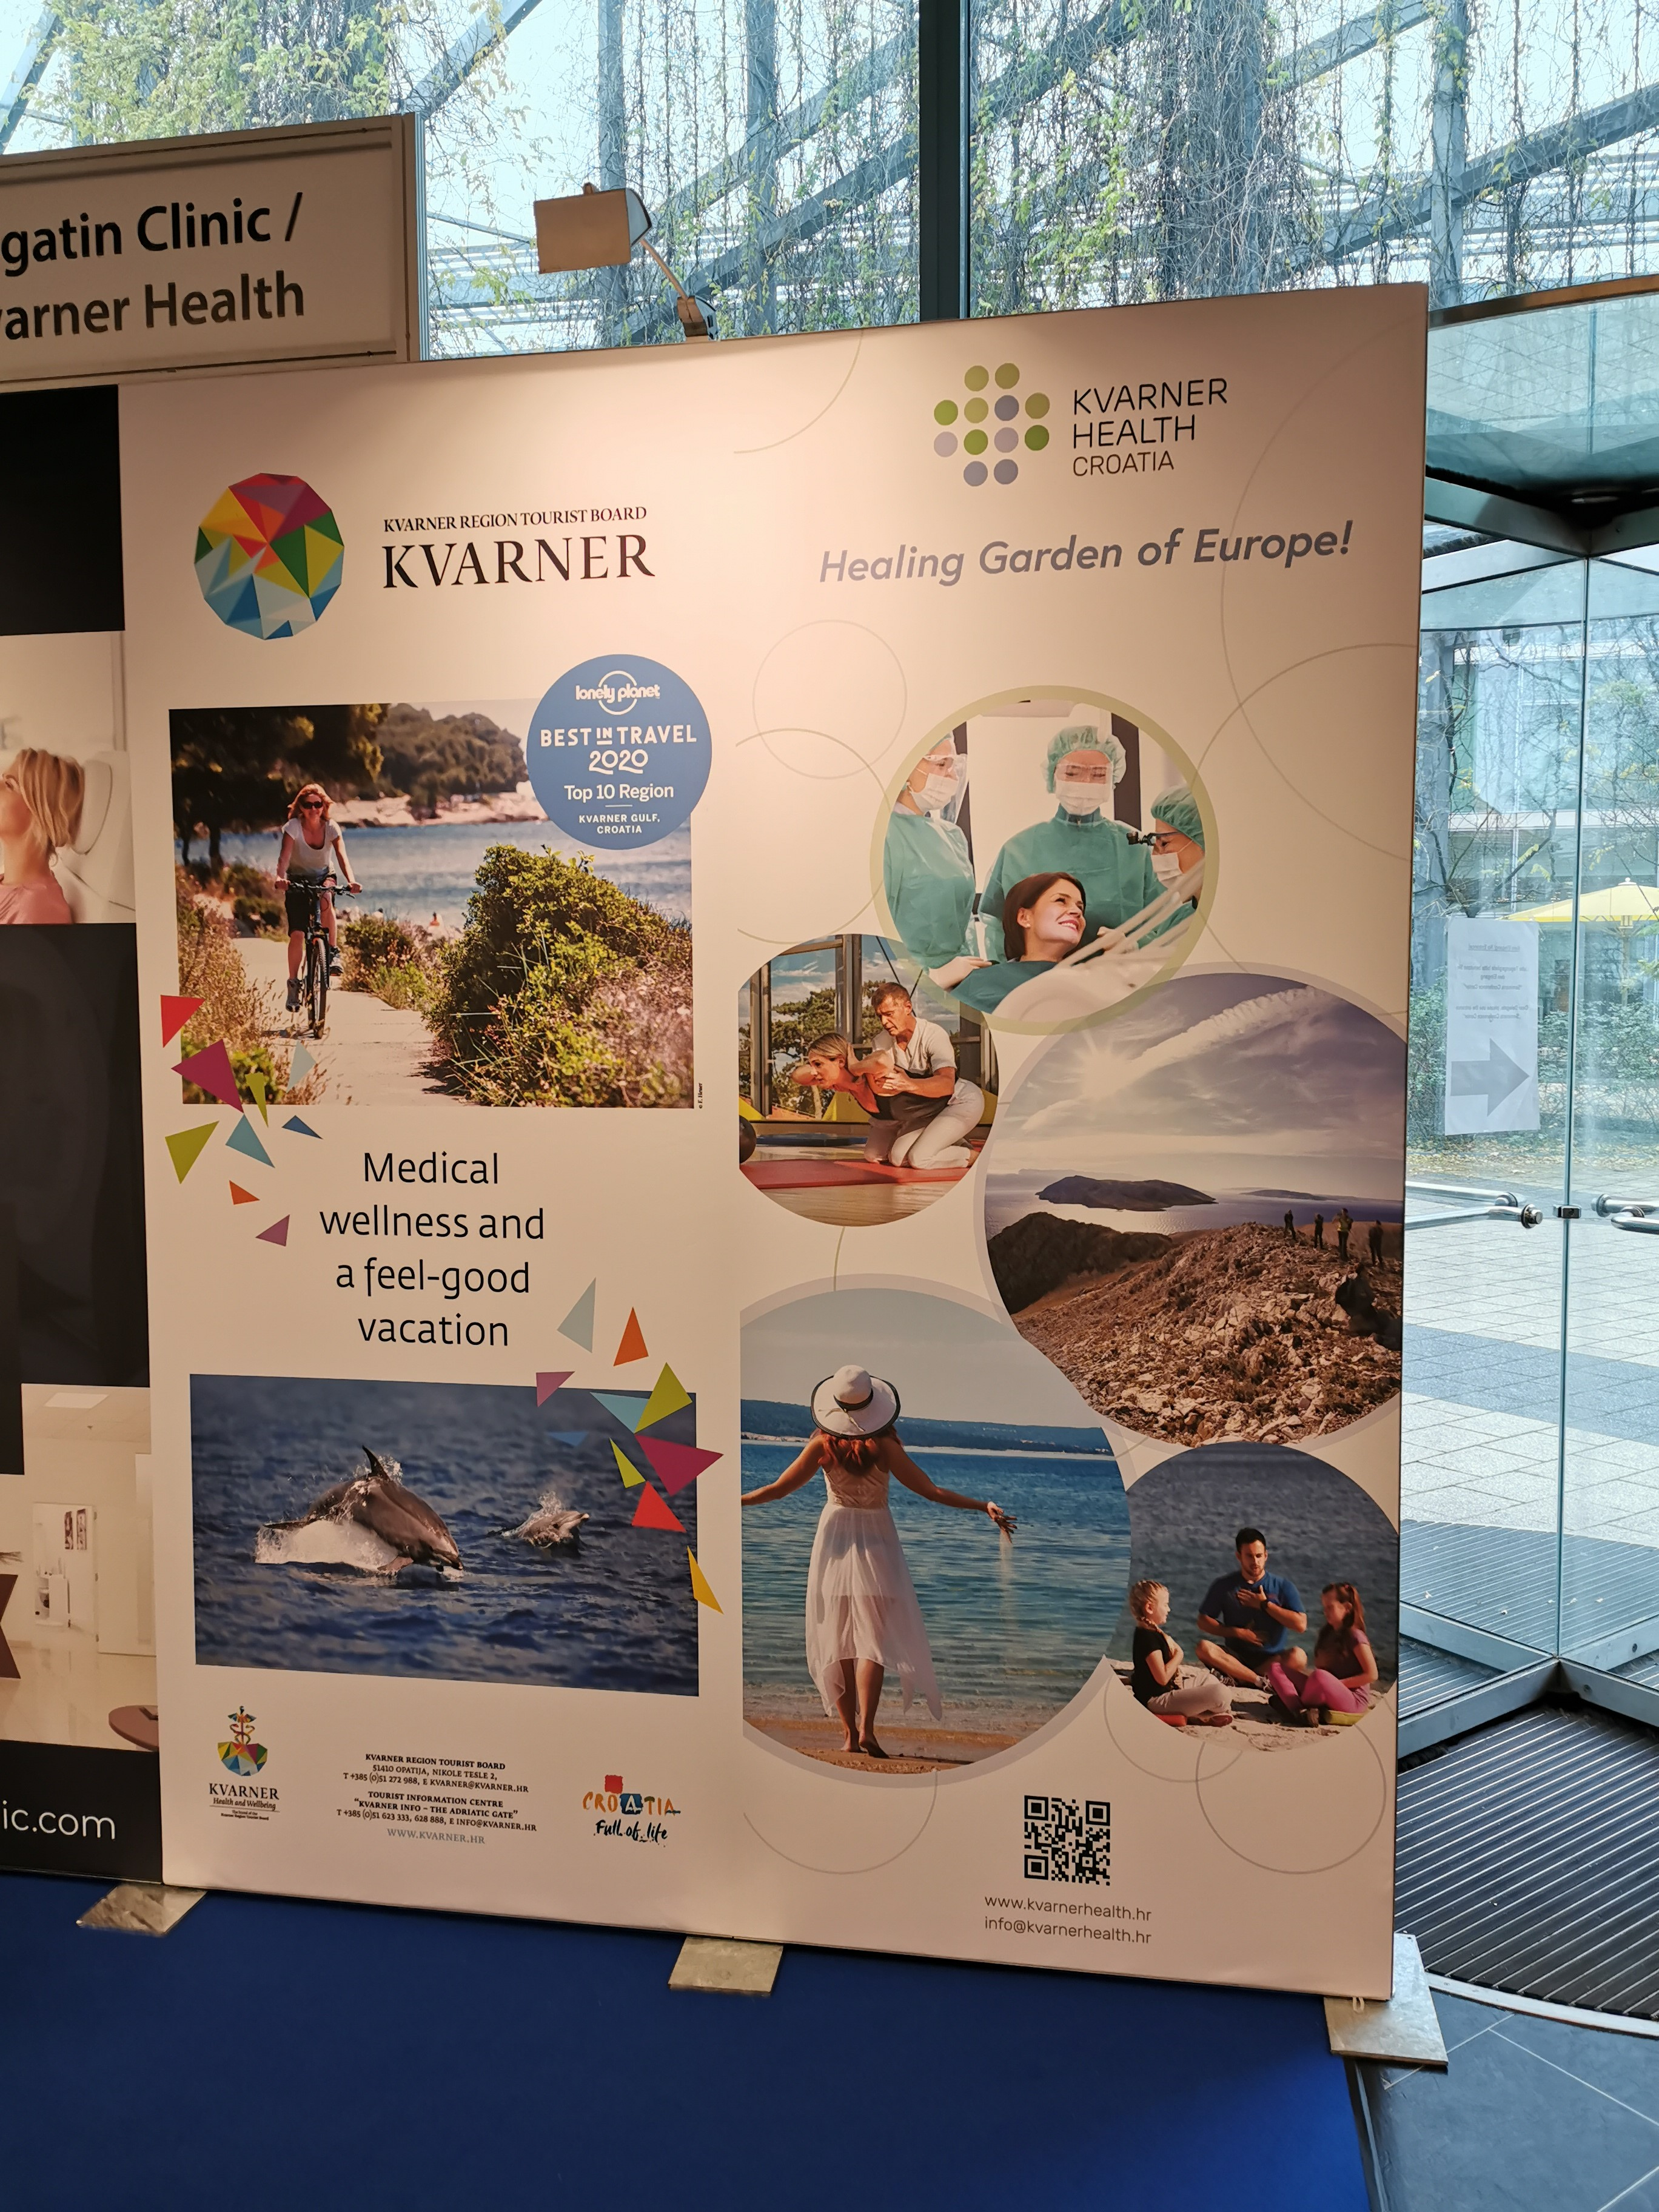 Kvarner Region Tourist Board and Kvarner Health